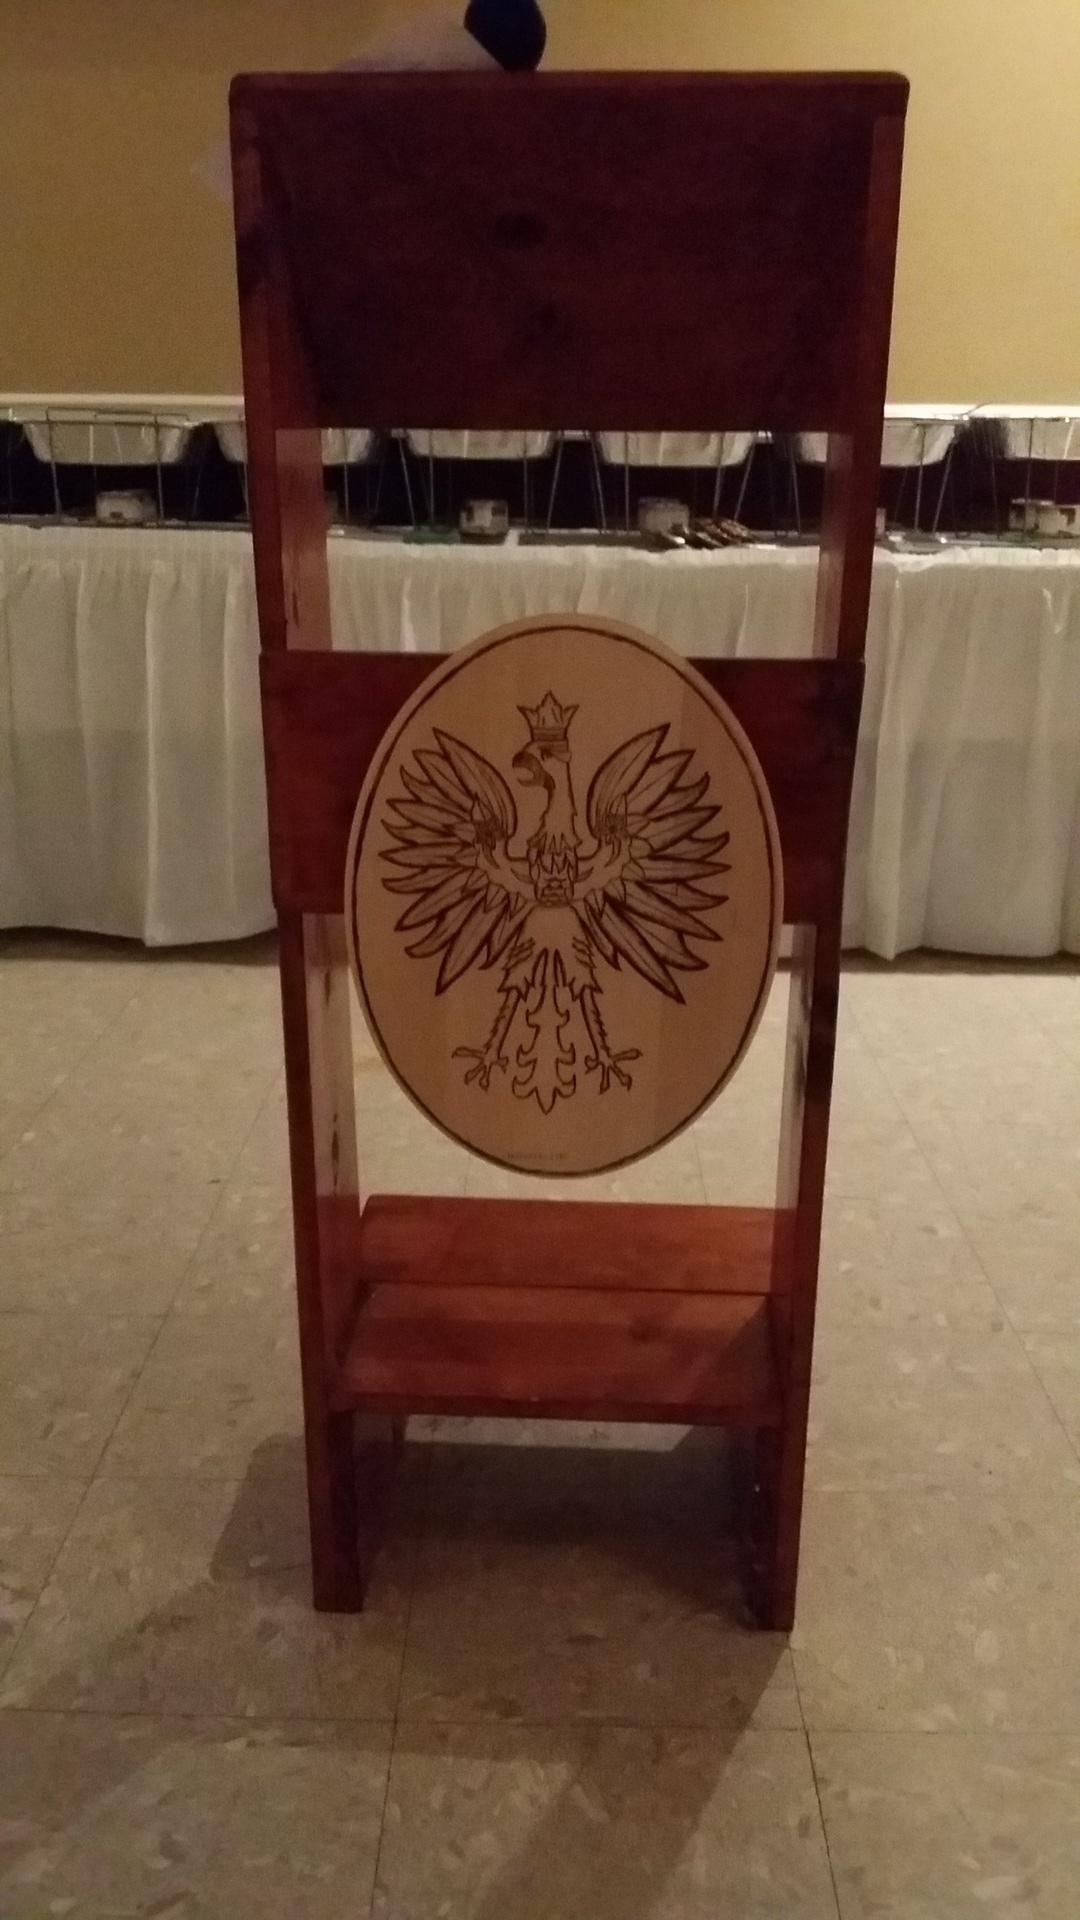 Podium with Wood burn Polish Eagle